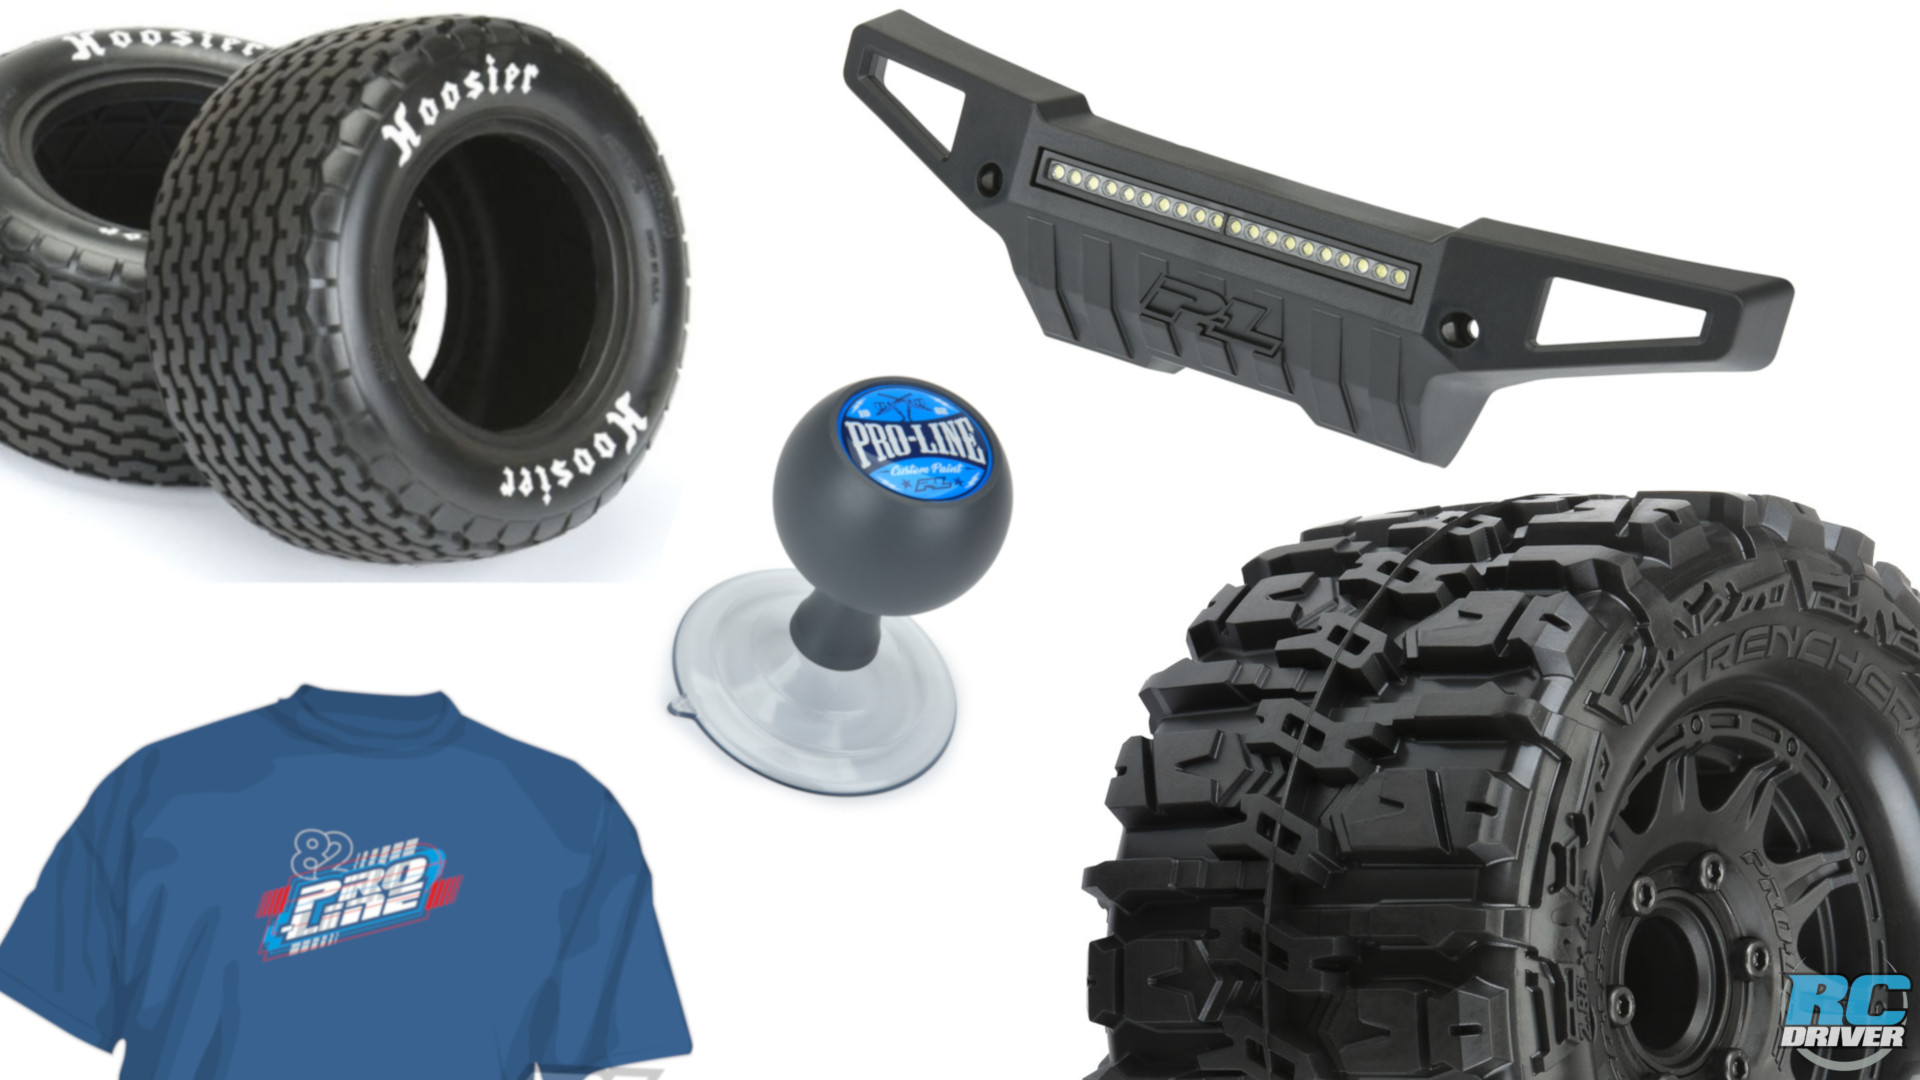 June Pro-Line product releases